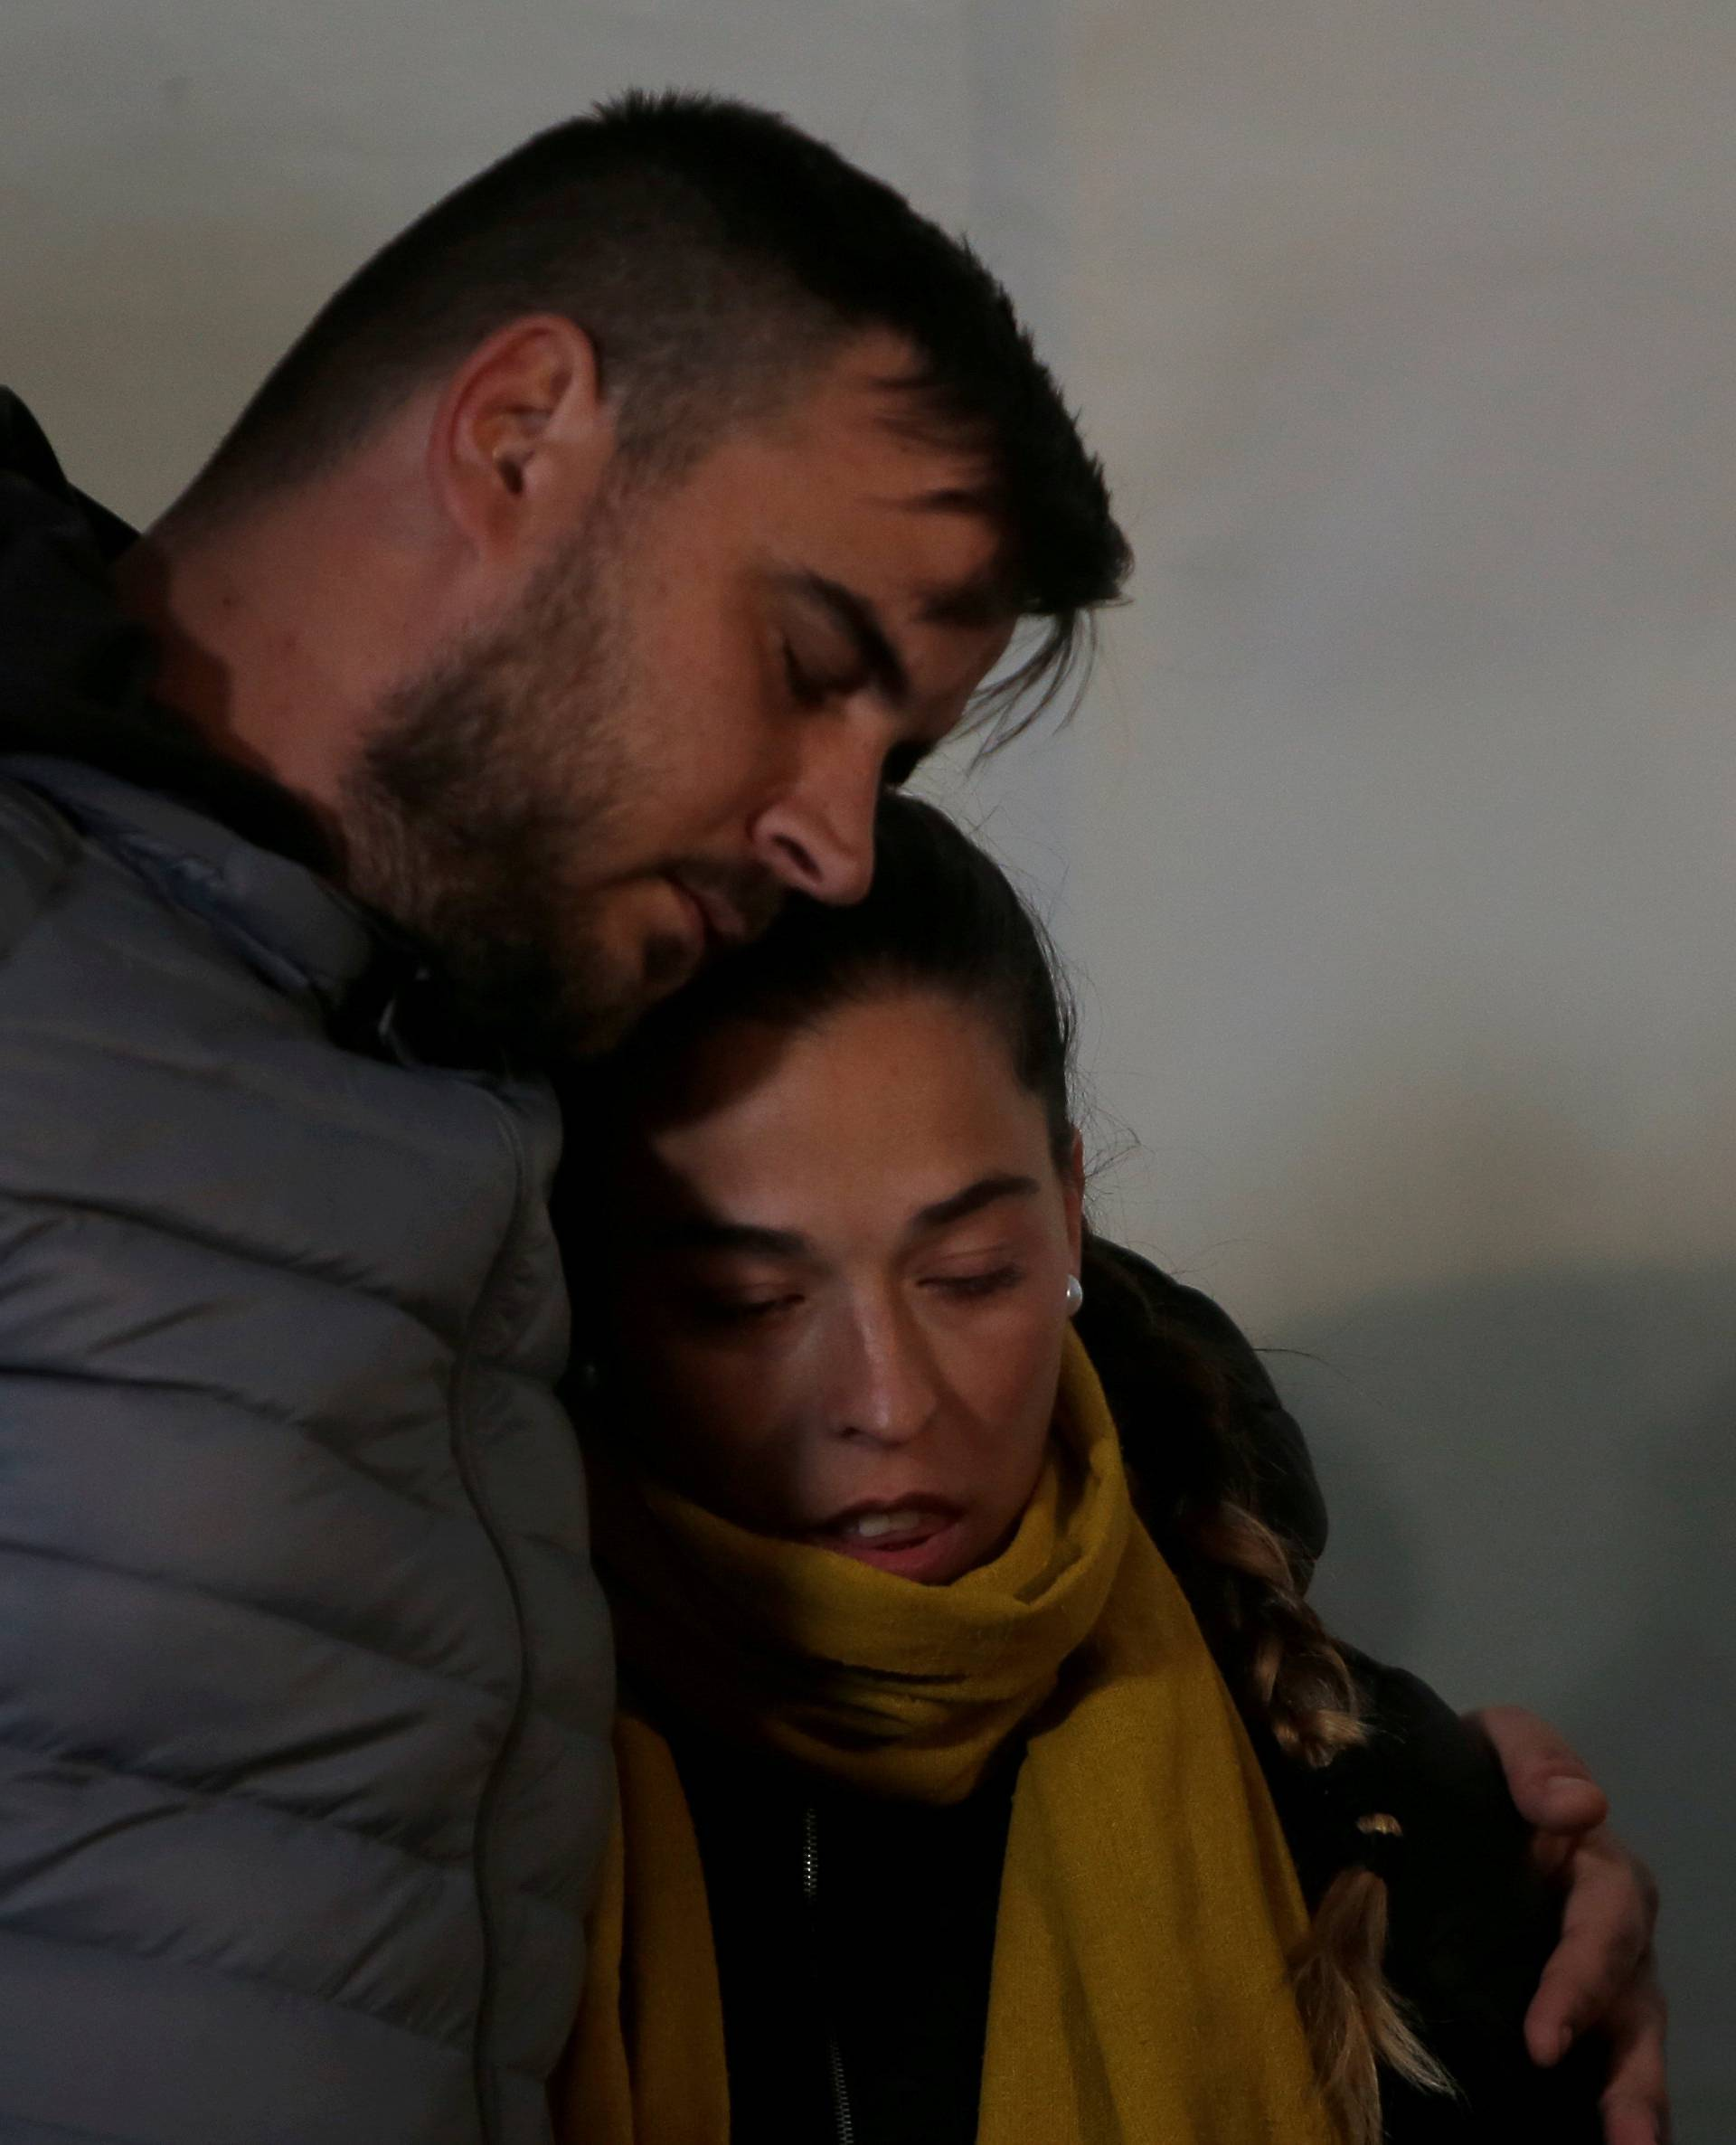 FILE PHOTO: FILE PHOTO: Julen's parents embrace each other during a vigil as a miner rescuer team descends into a drilled well at the area where Julen, a Spanish two-year-old boy, fell into a deep well, in Totalan